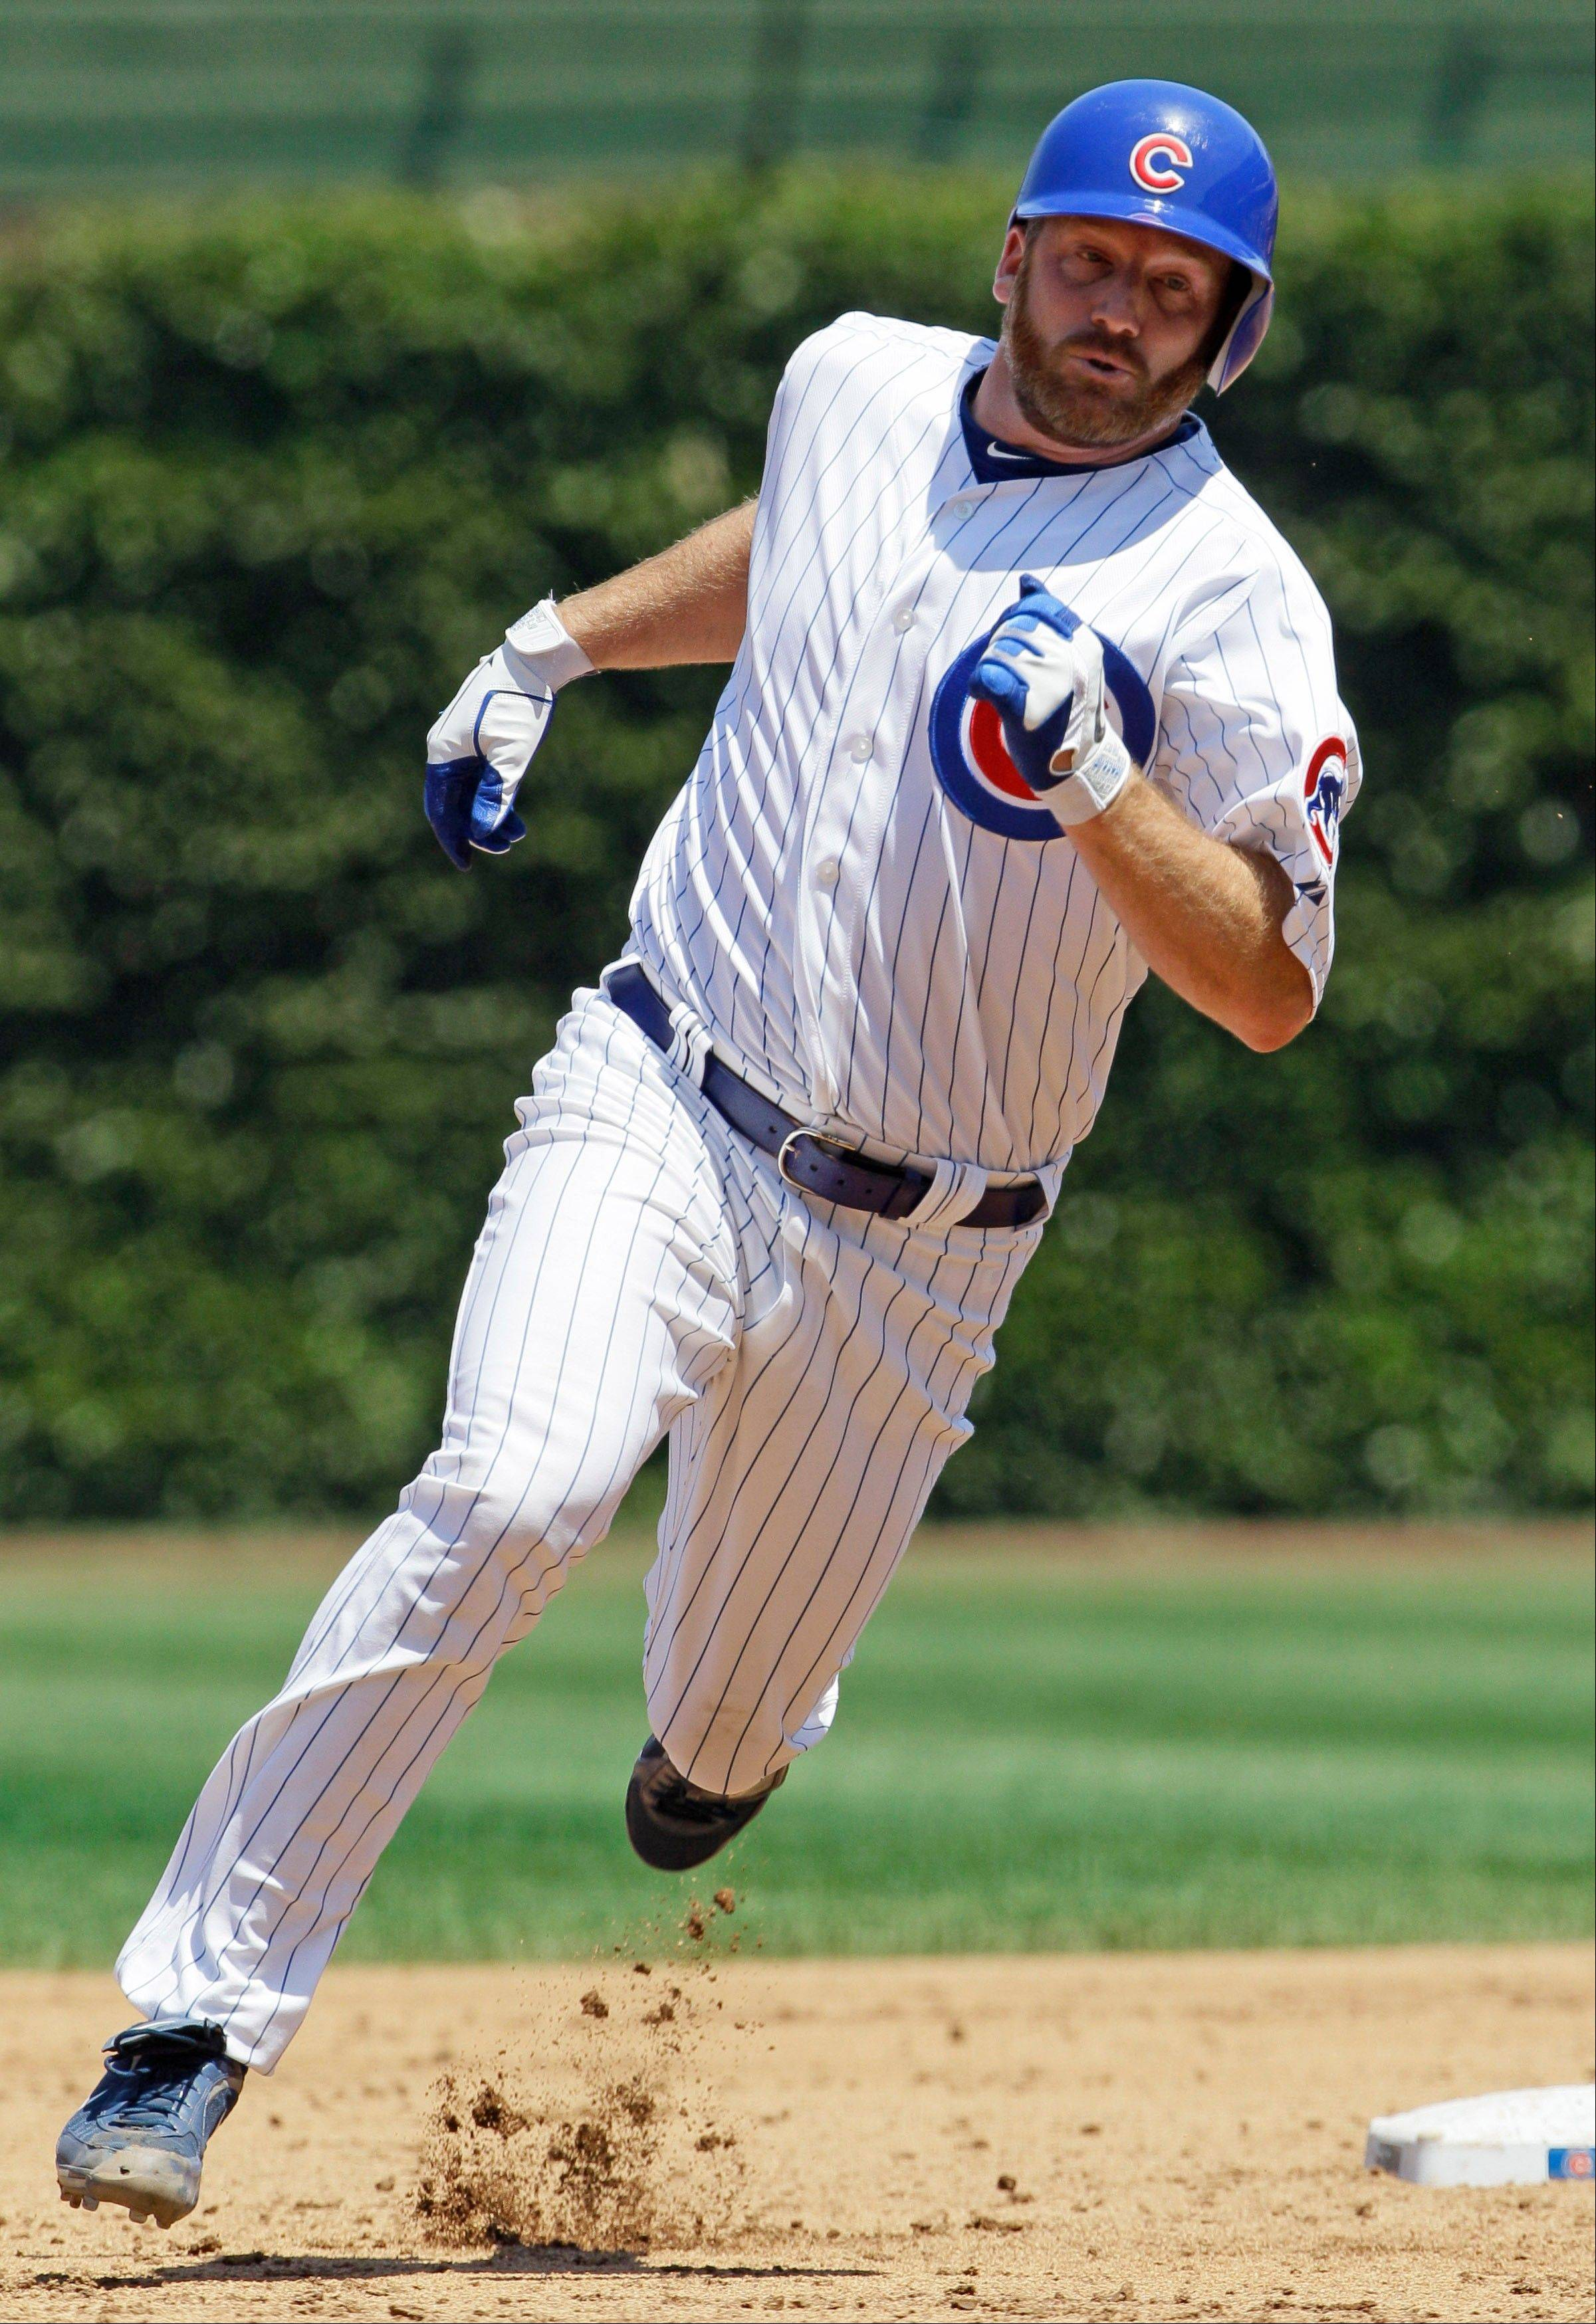 Cubs starter Ryan Dempster runs toward third base while legging out a triple in the second inning against the Red Sox on Friday at Wrigley Field.